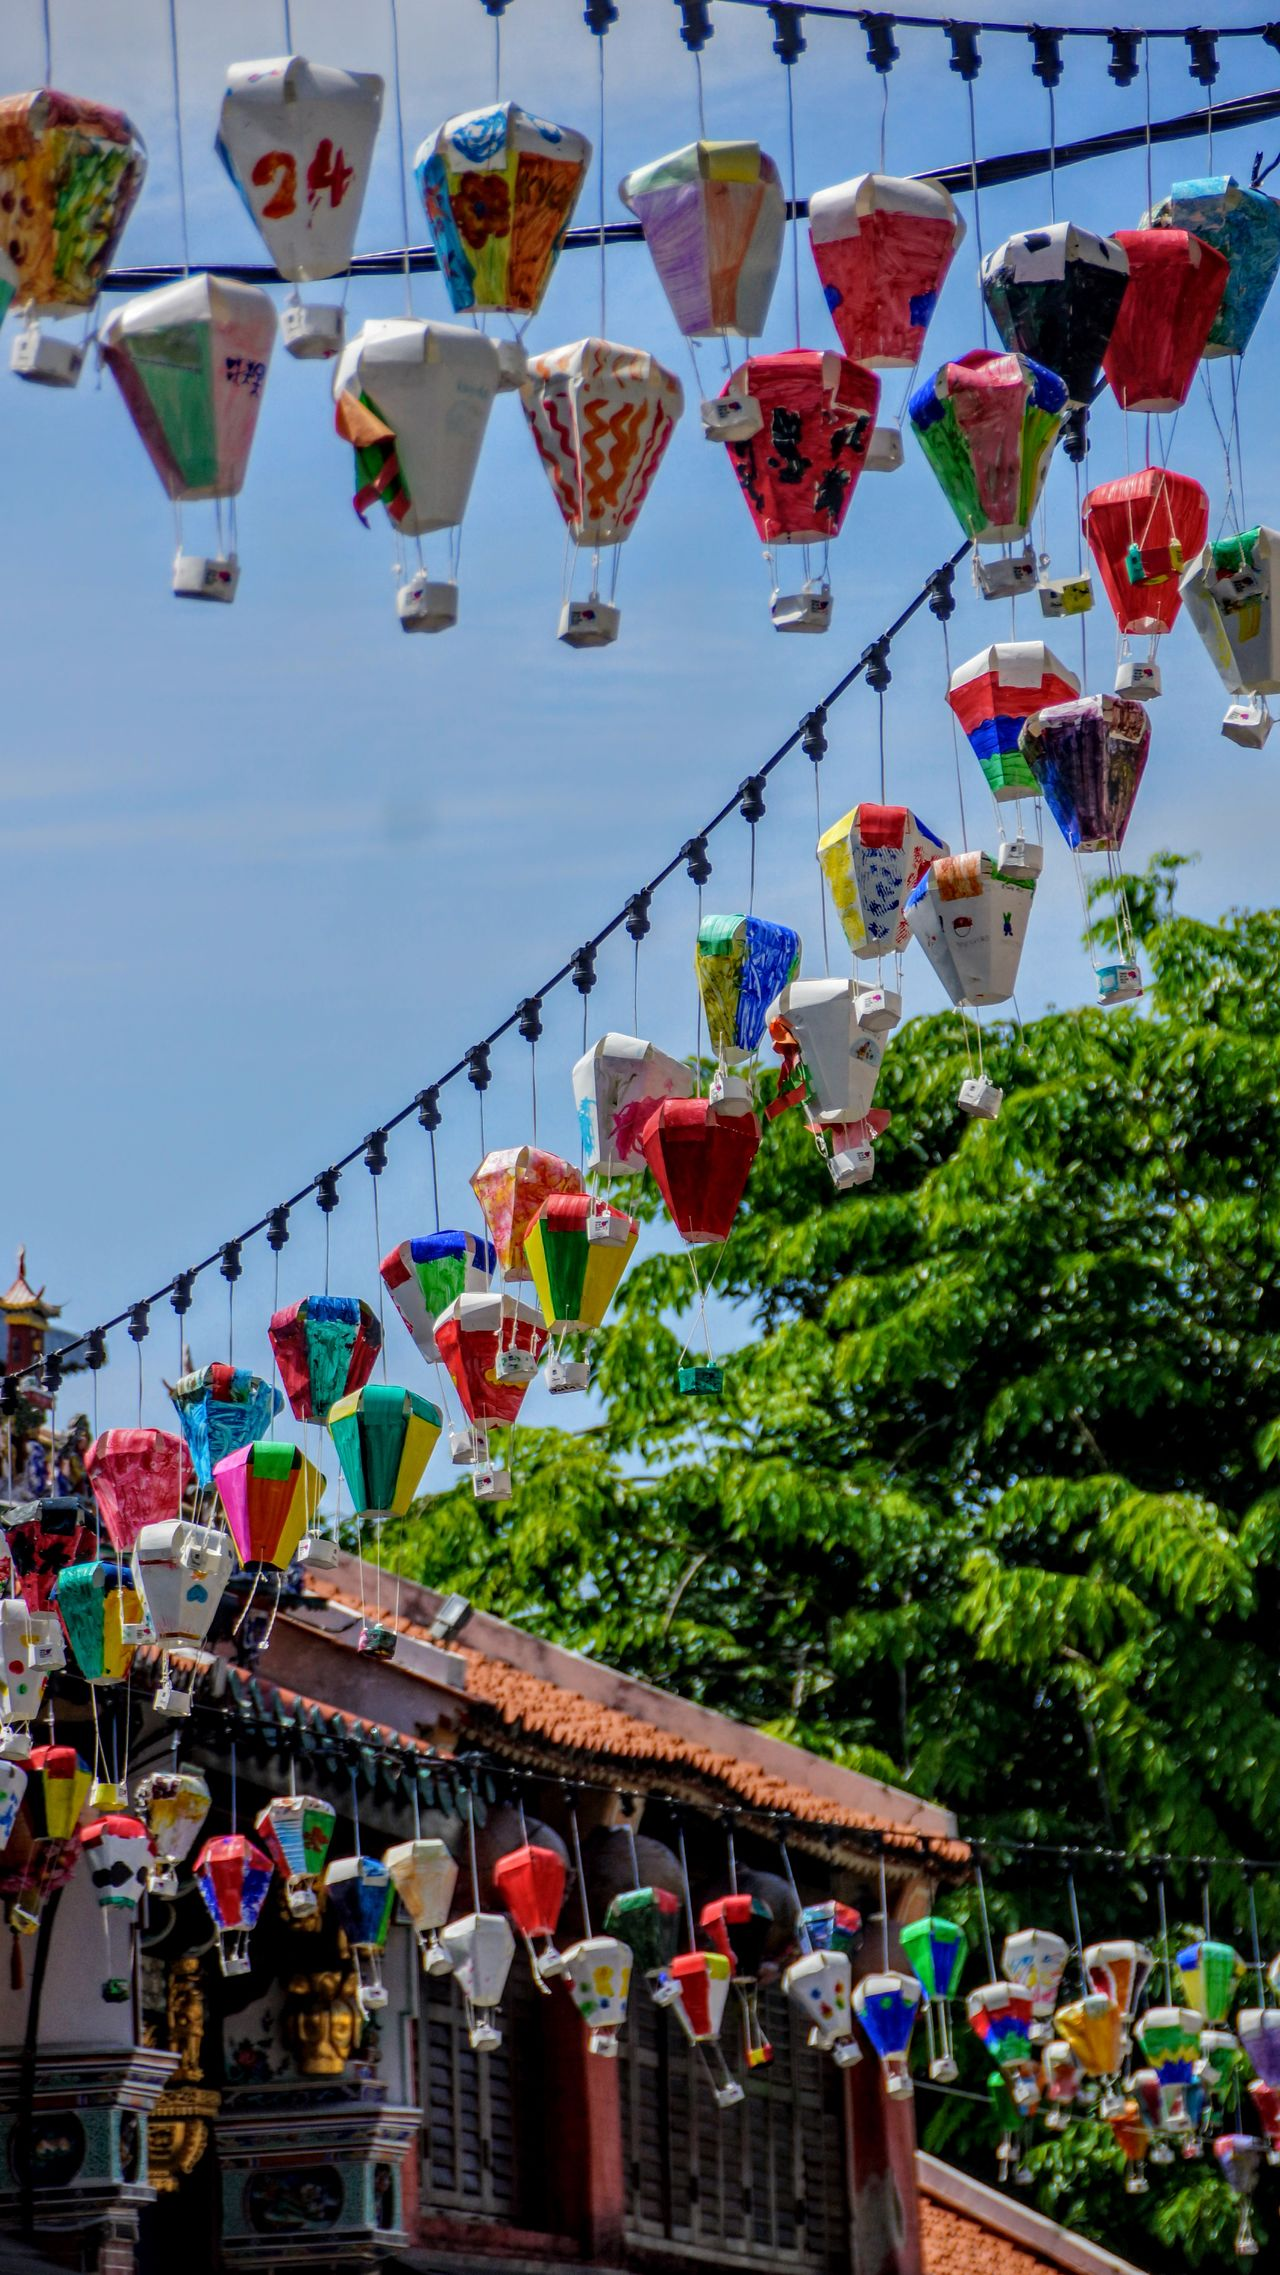 Colors path Asian Culture Georgetown Penang Tanglong UNESCO World Heritage Site World Heritage Architecture Building Exterior Built Structure Day Hanging Lantern Large Group Of People Malaysia Men Multi Colored Outdoors Pen People Real People Sky Street Streetphotography Tree Variation